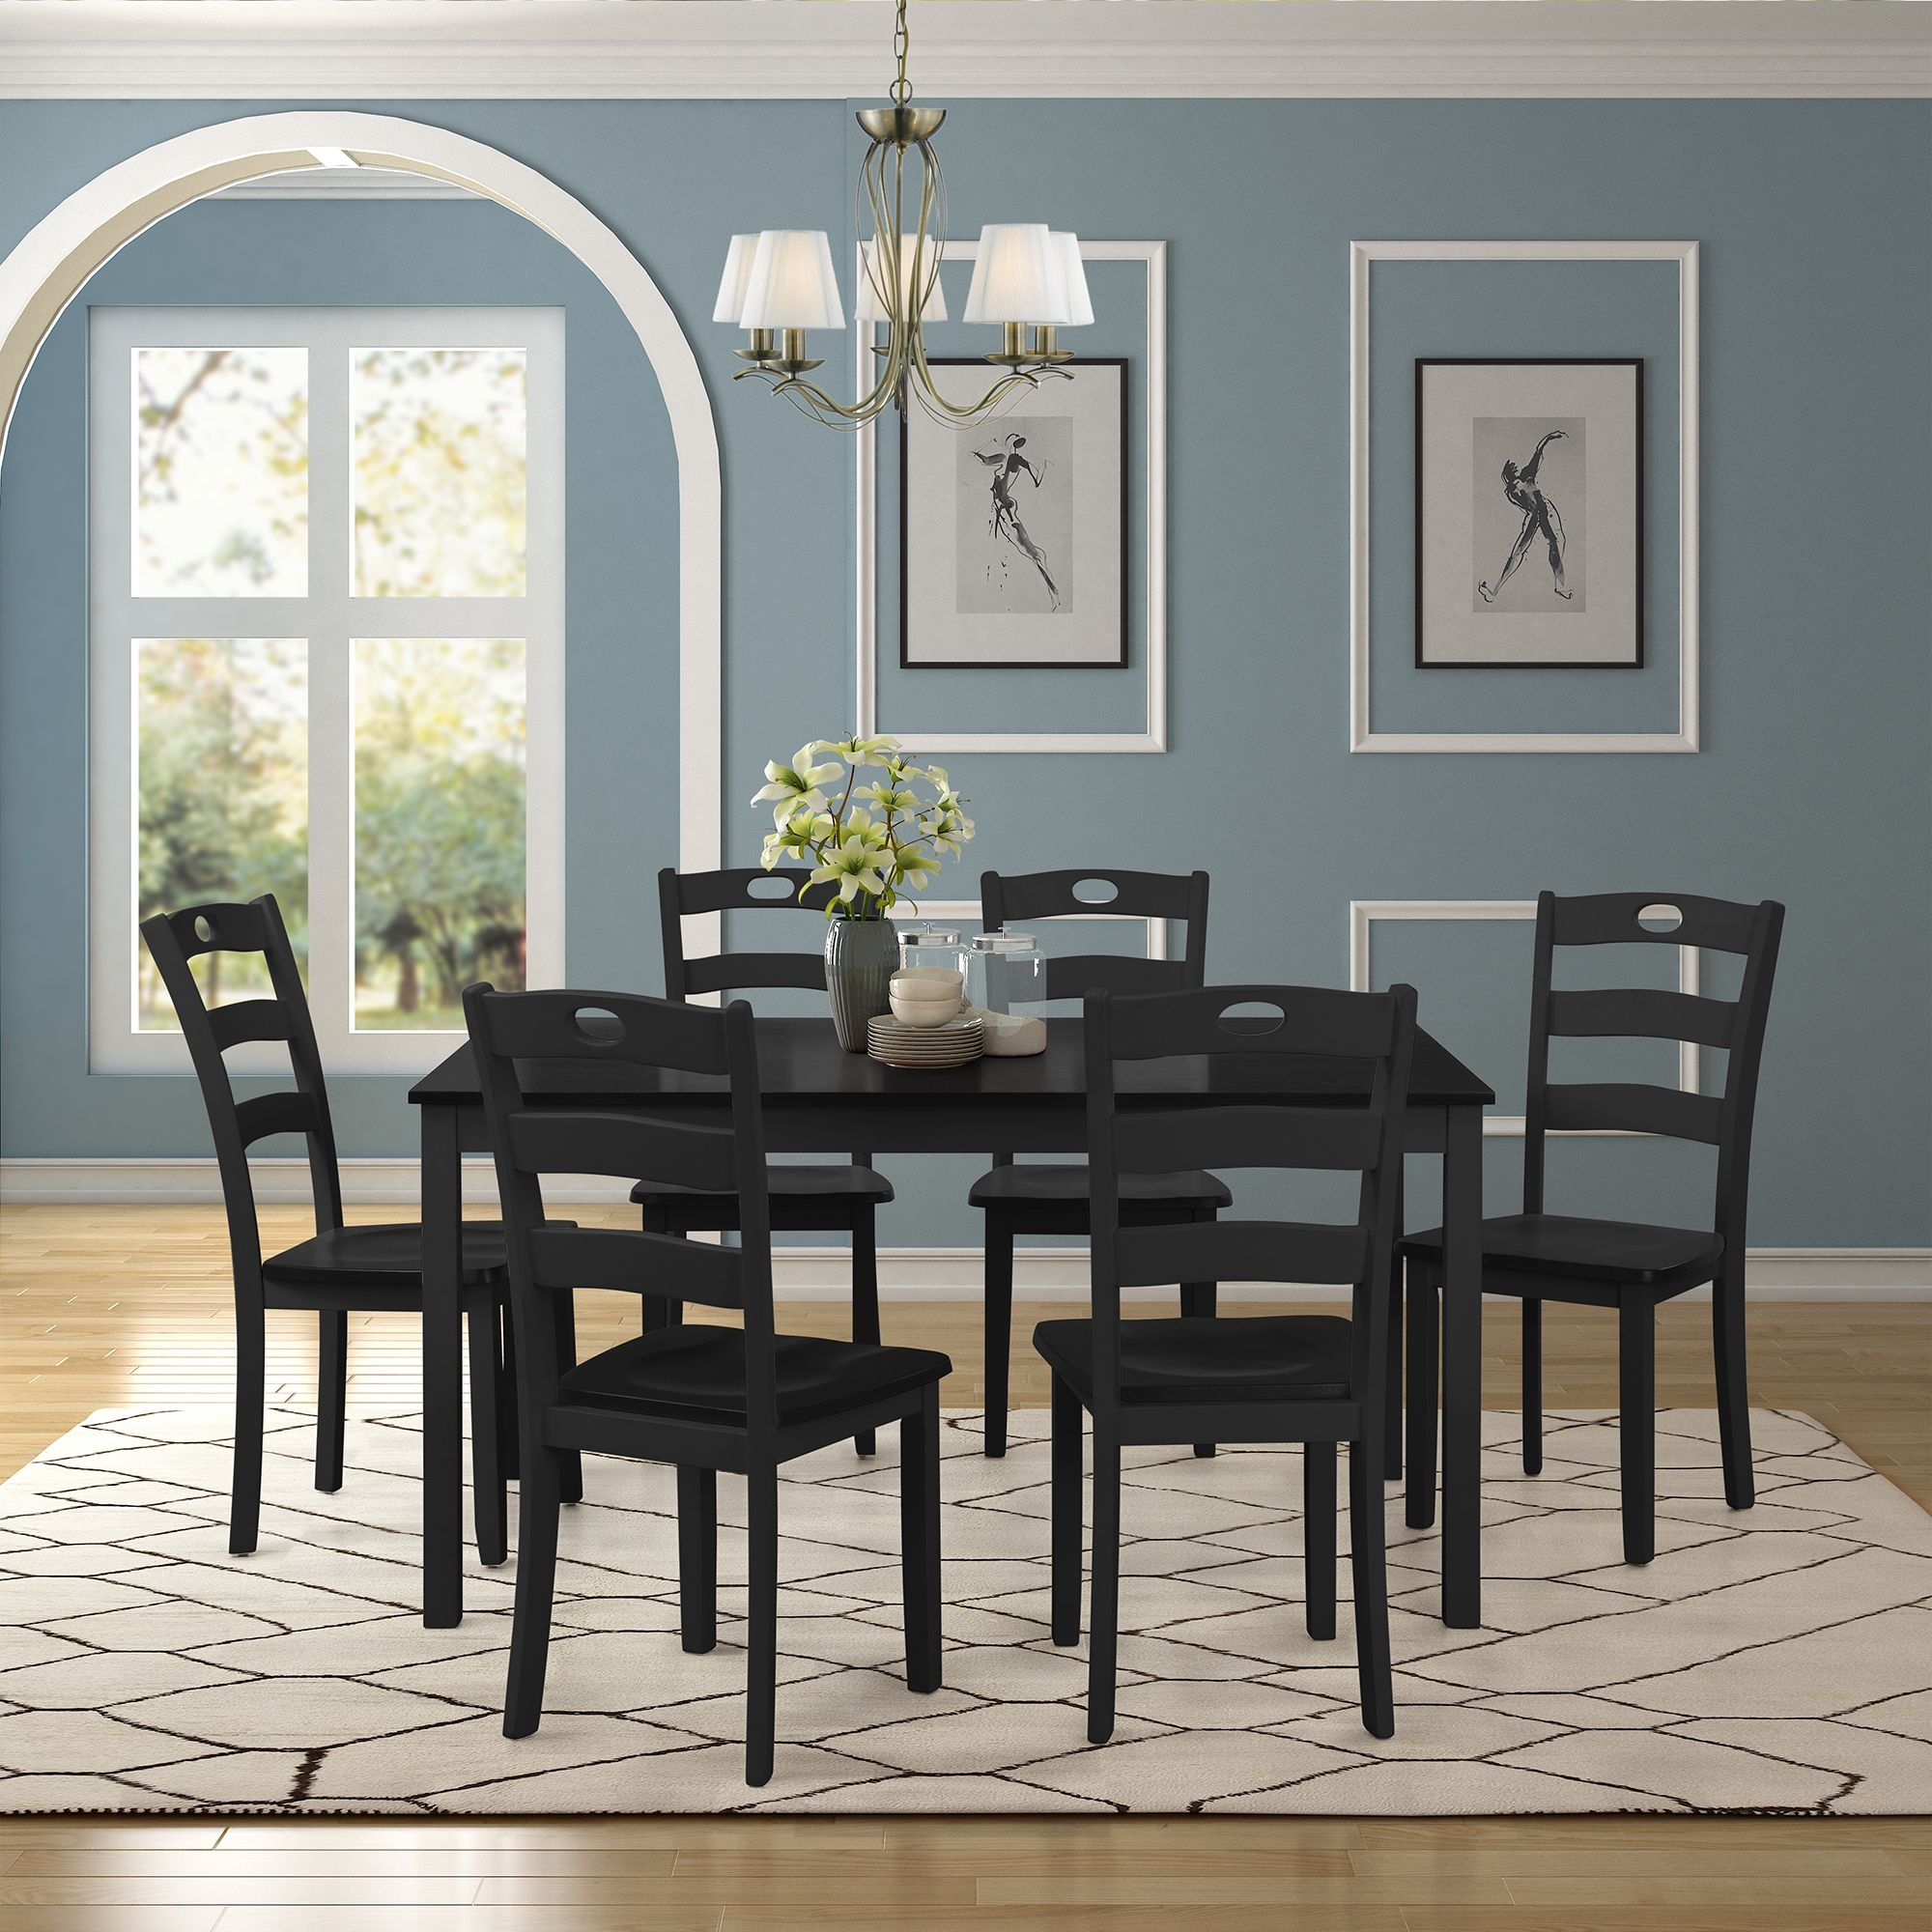 Black Dining Table Set For 6 Modern 7 Piece Dining Room Table Sets With Chairs Heavy Duty